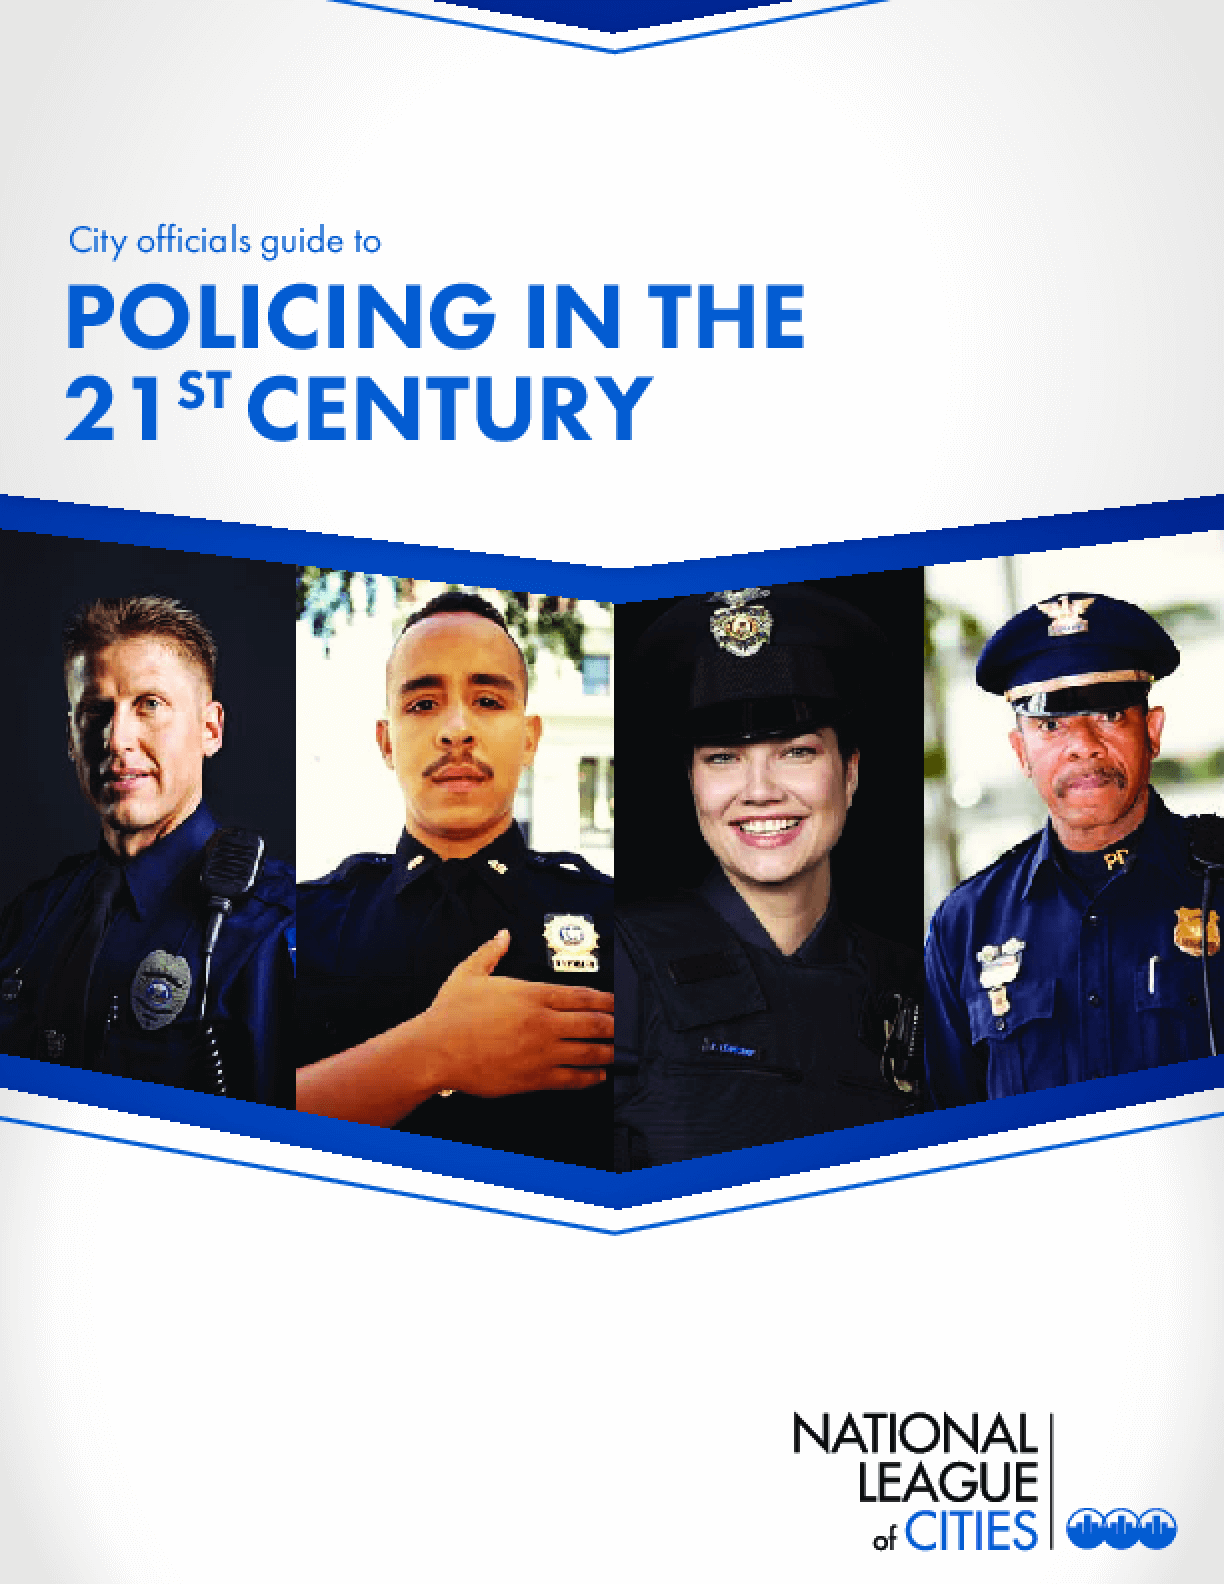 City Officials Guide to Policing in the 21st Century